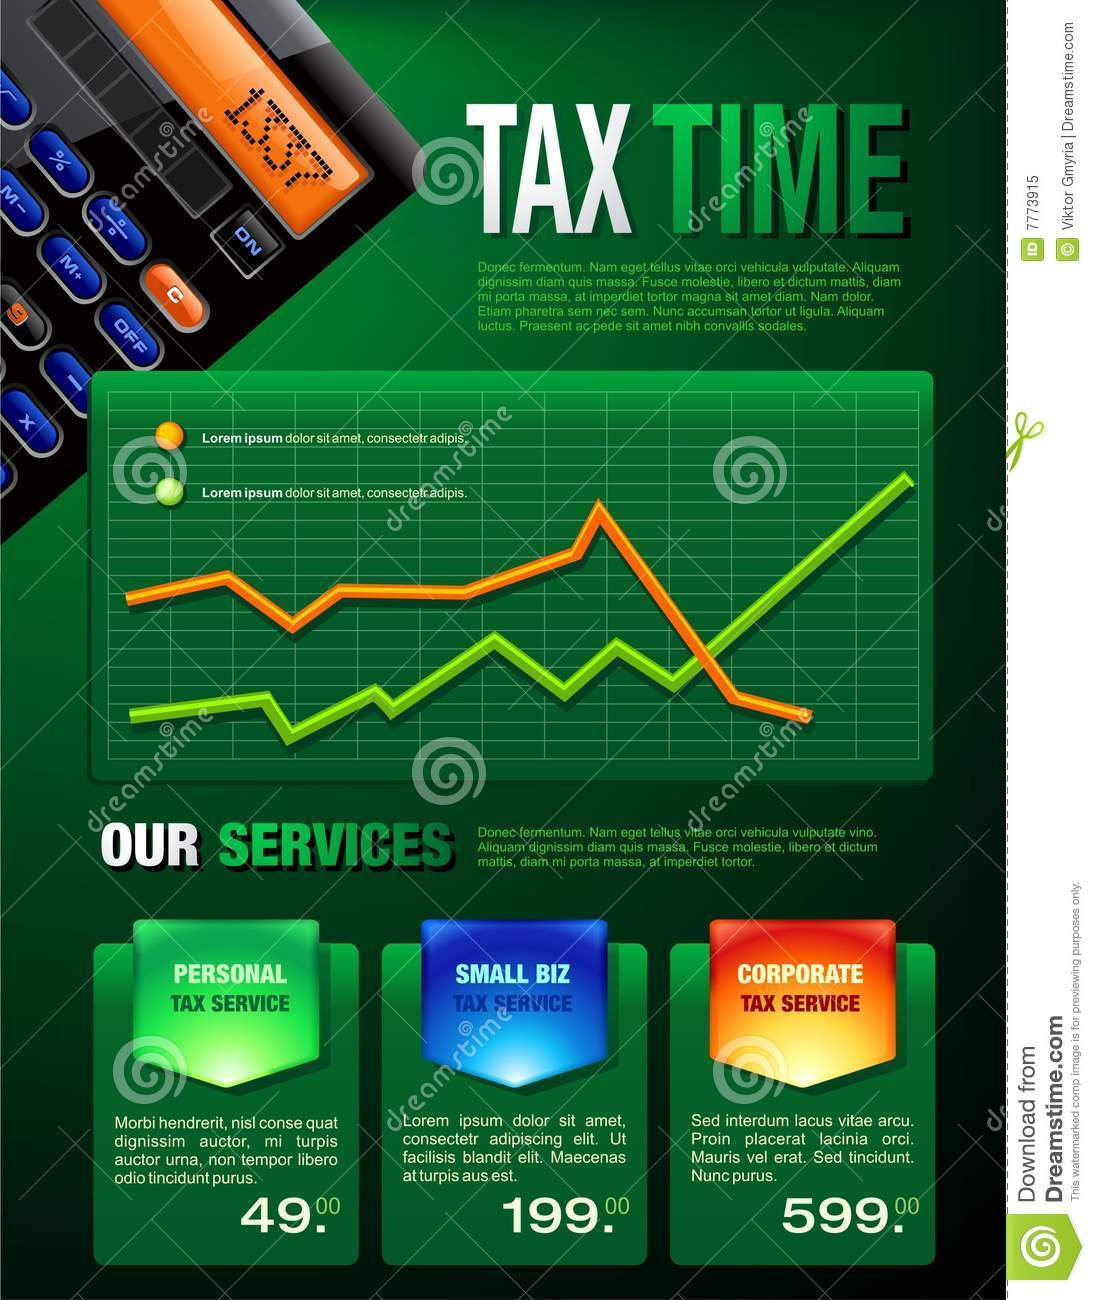 Tax Services Brochure Royalty Free Stock Photo - Image: 7773915